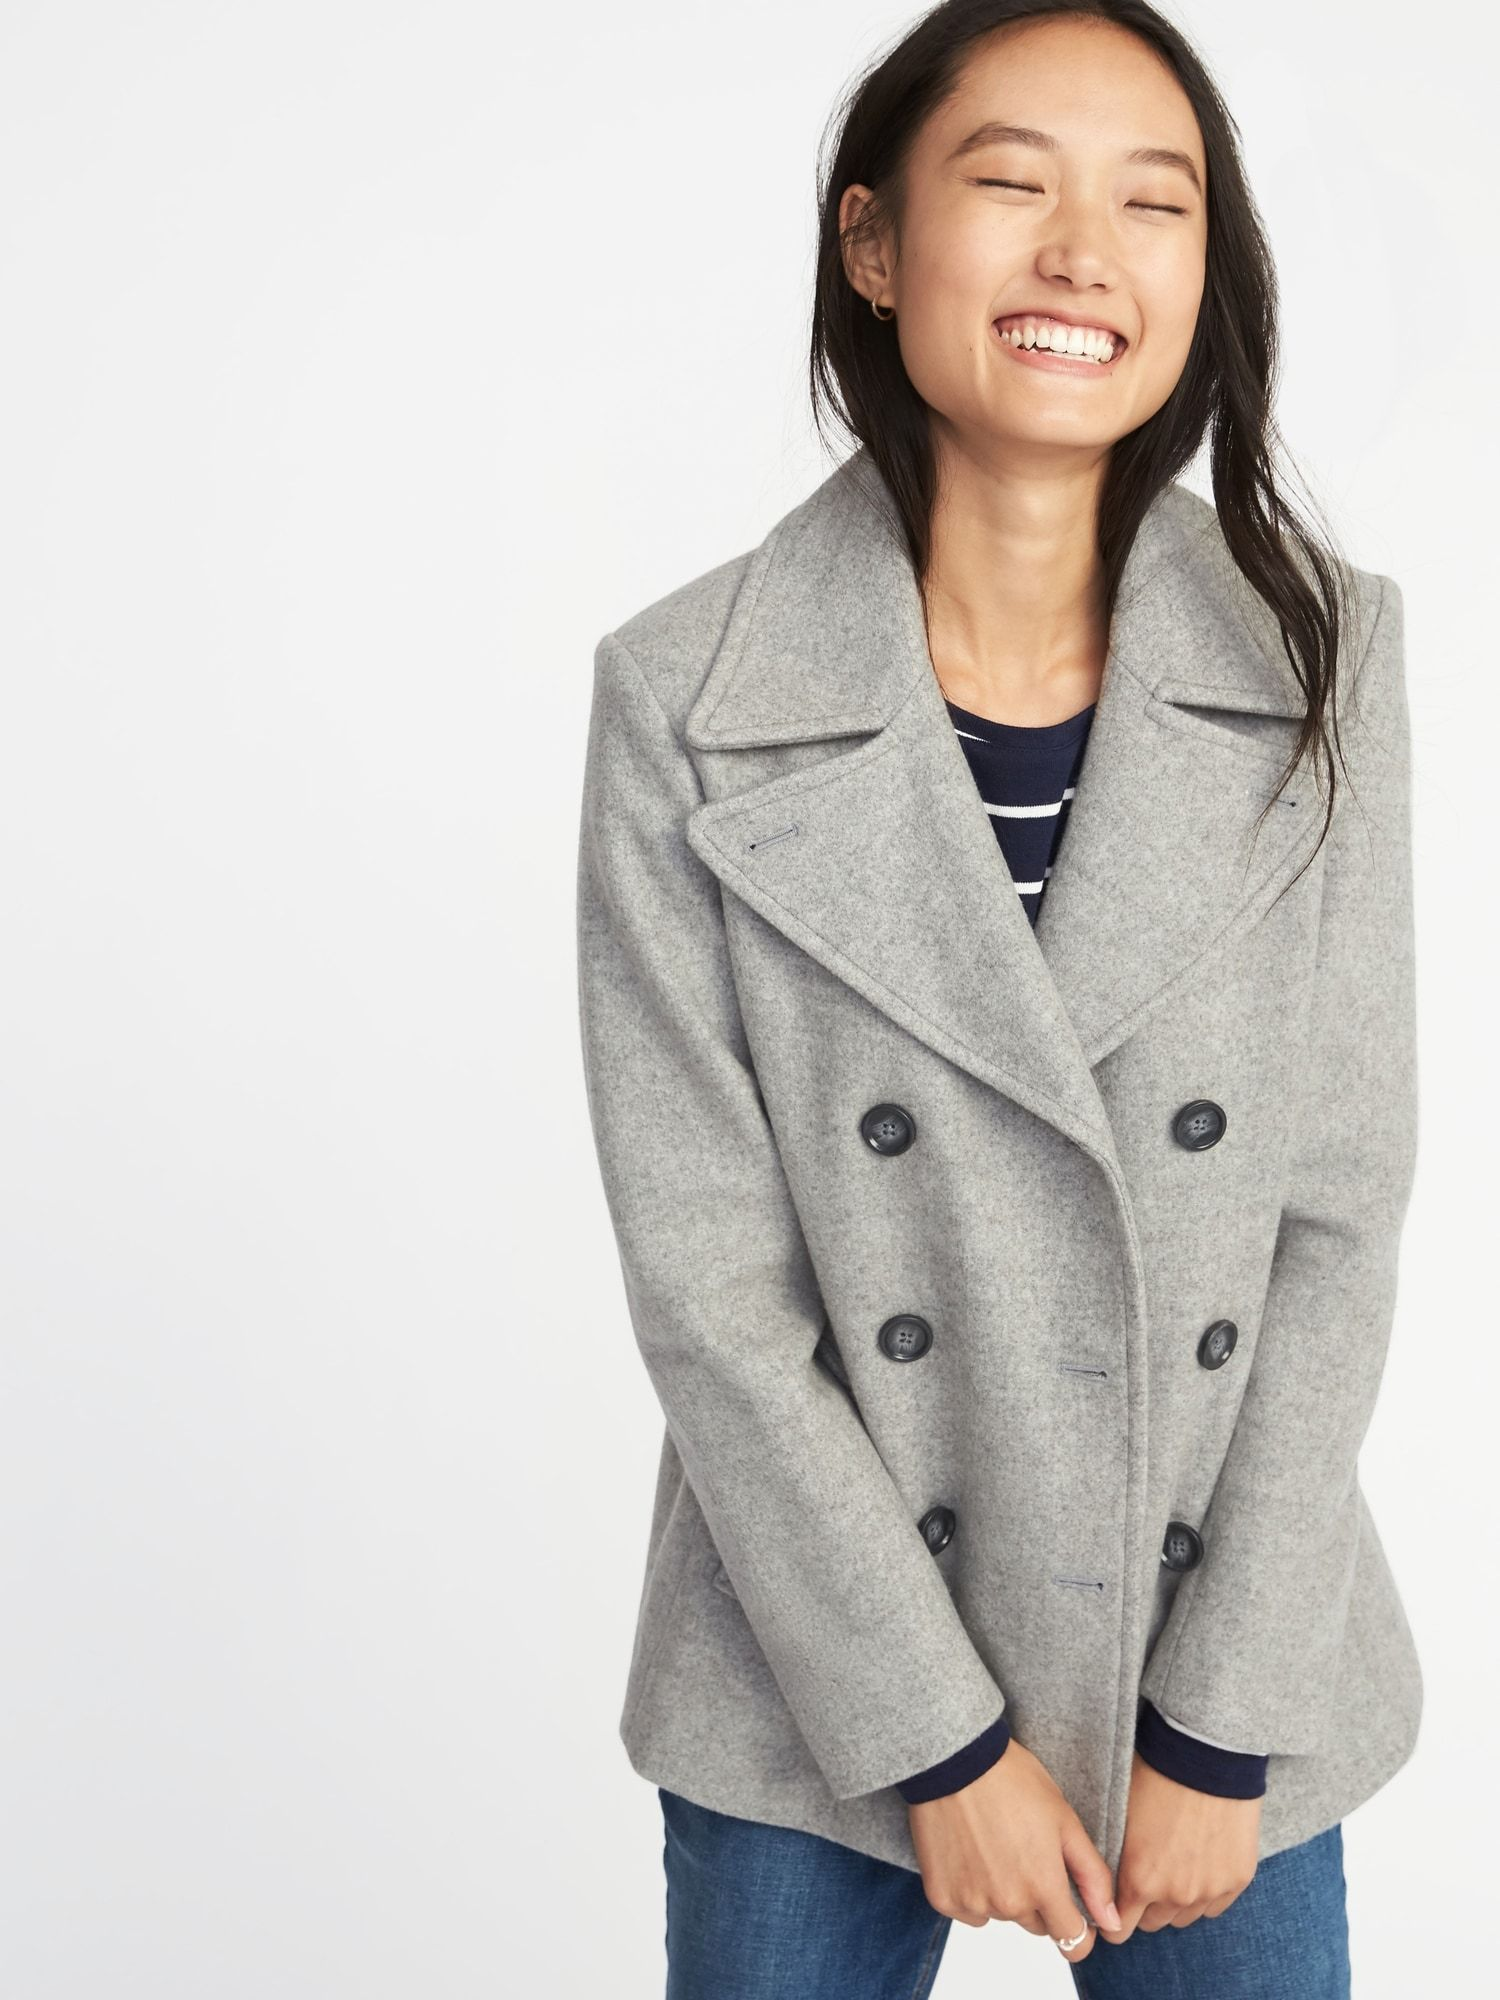 Look - How to peacoat a wear womens video